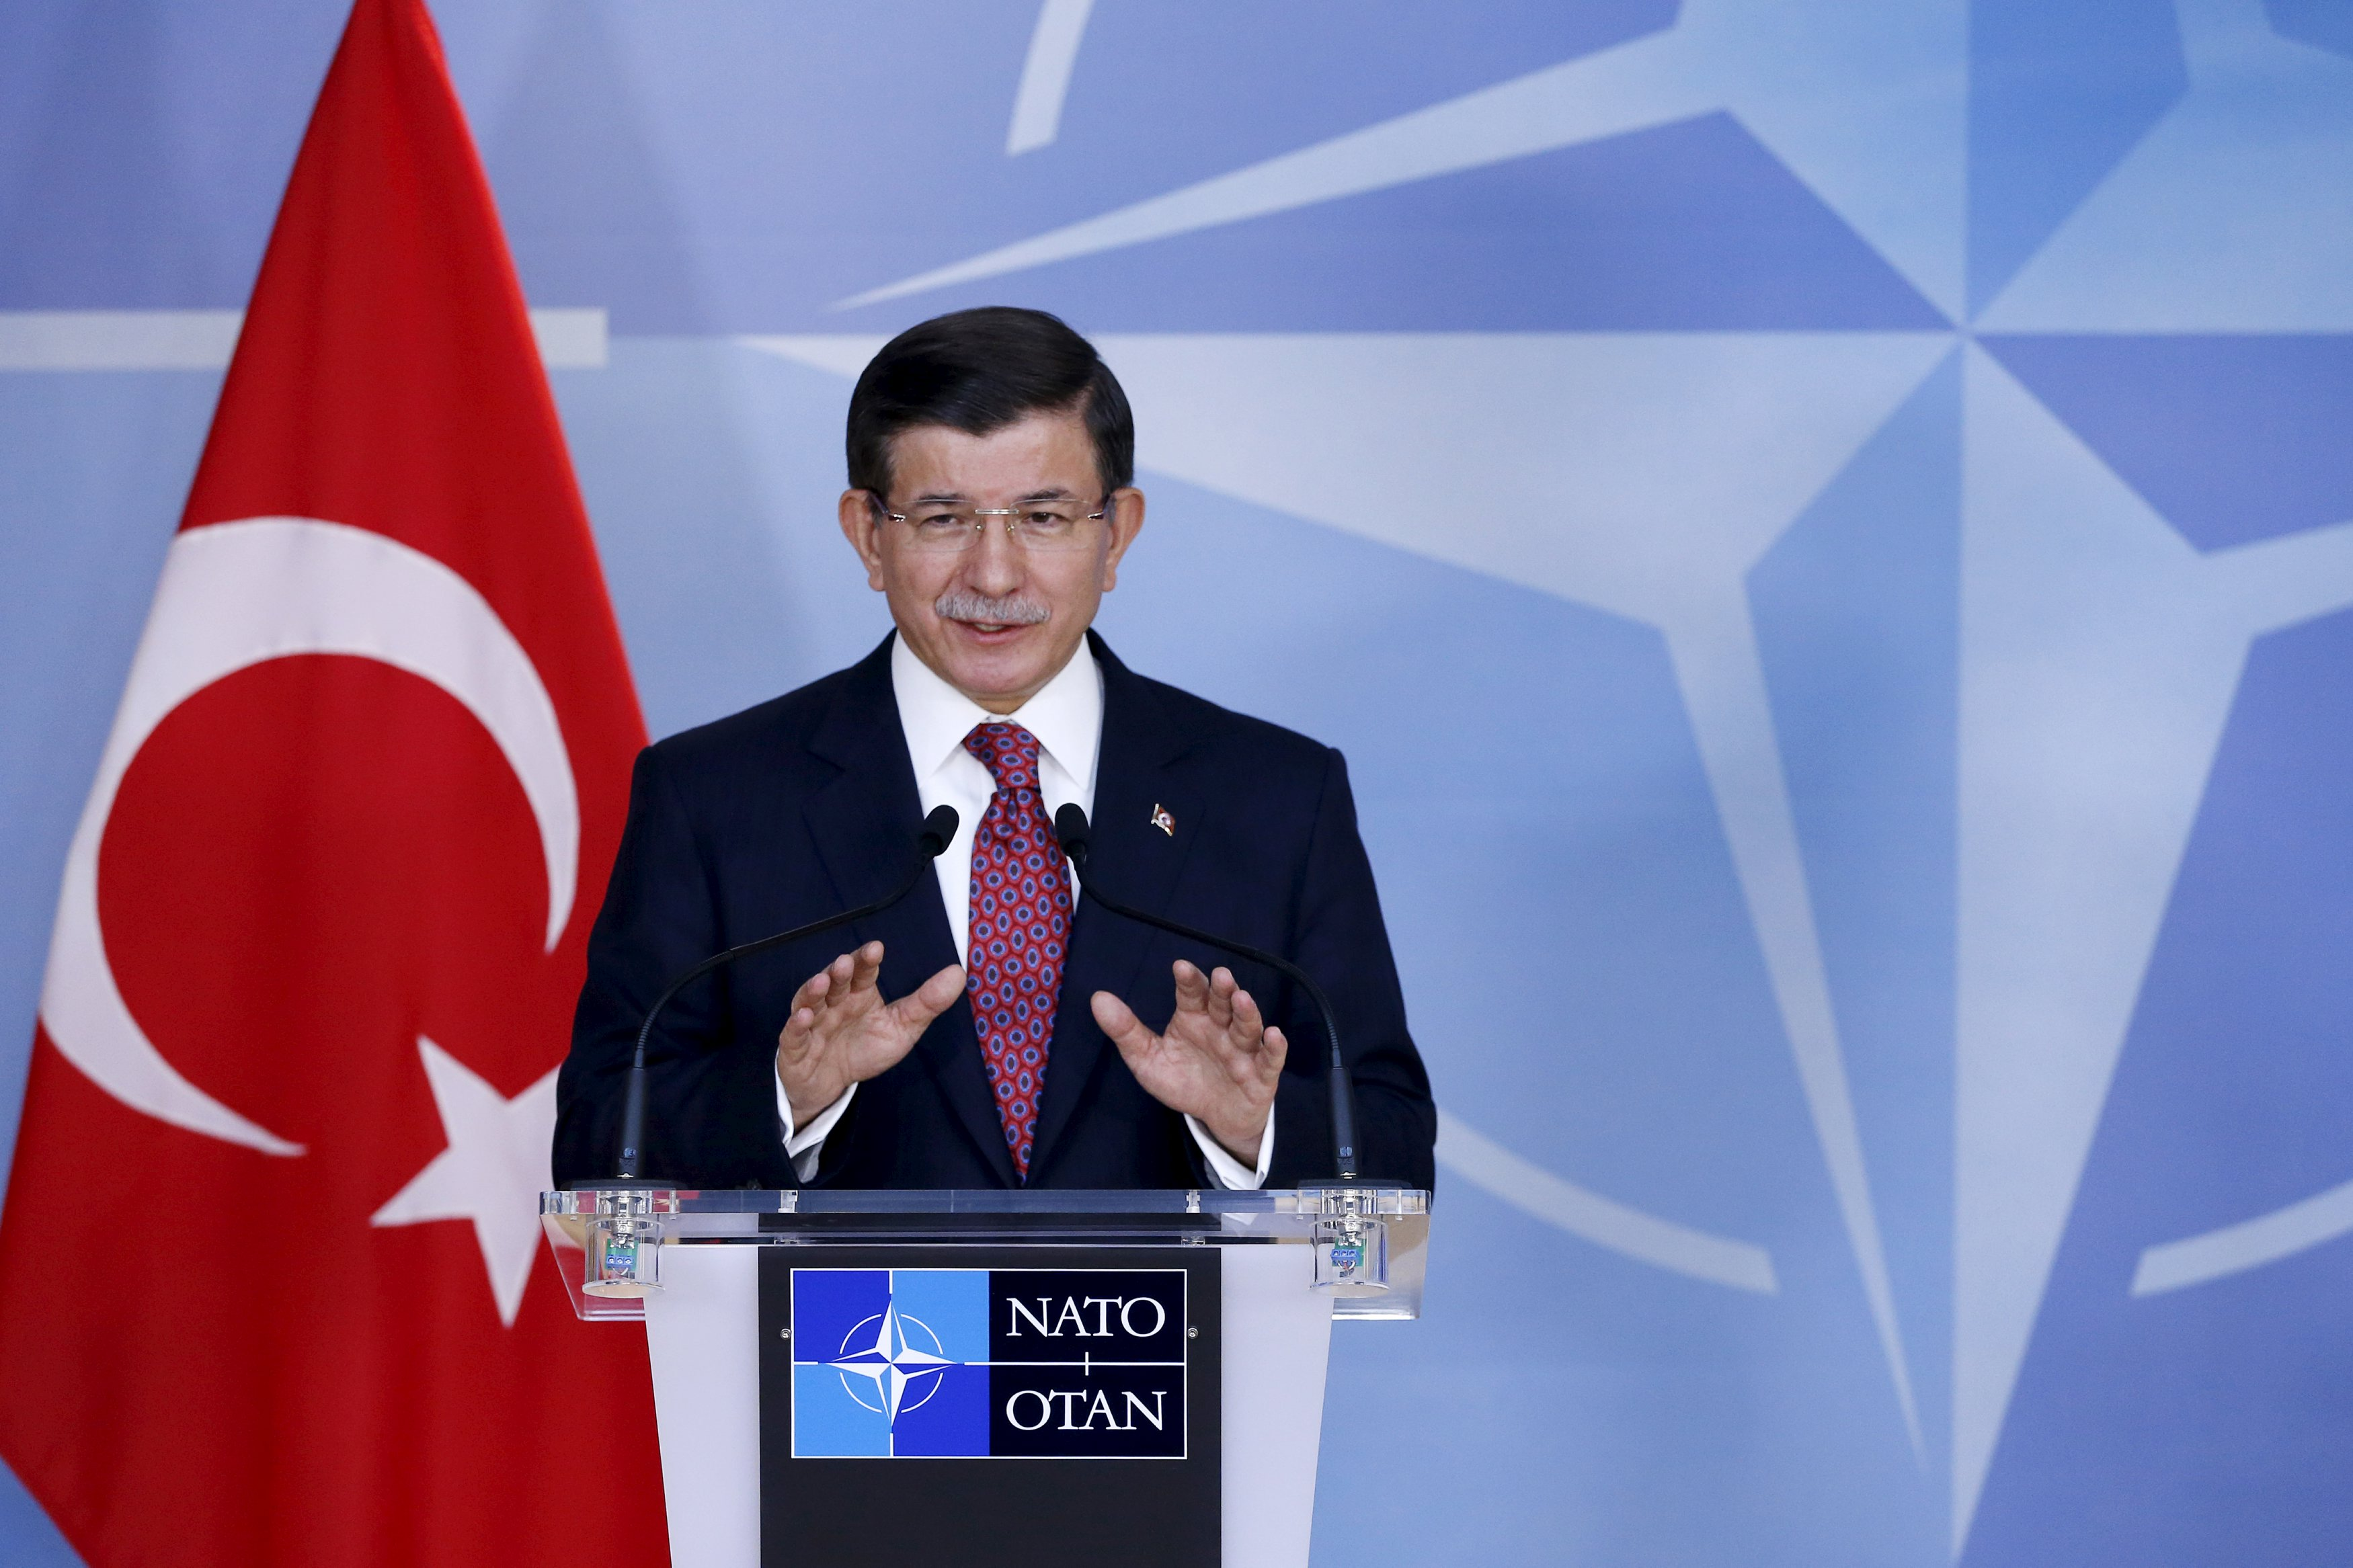 Turkish Prime Minister Ahmet Davutoglu addresses a news conference after meeting NATO Secretary-General Jens Stoltenberg at the Alliance's headquarters in Brussels, Belgium, November 30, 2015. Photo: Reuters